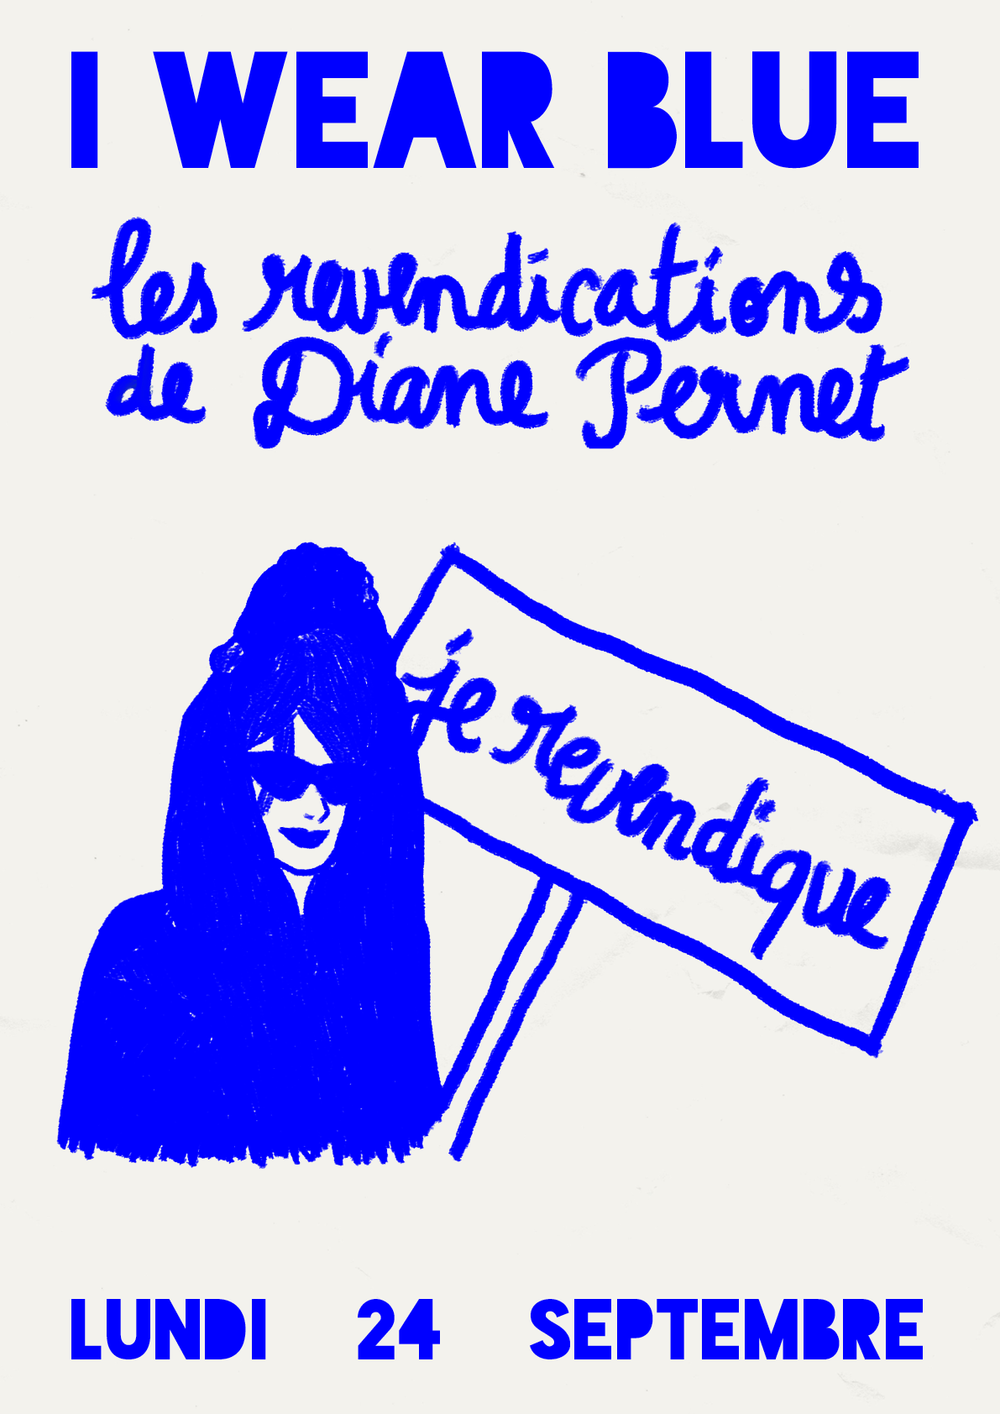 Les Revendications de Diane Pernet - Les Revendications de Diane PernetAfterwork: 6 - 8 pmConference and Q&A with Diane Pernet on new technologiesCocktail party